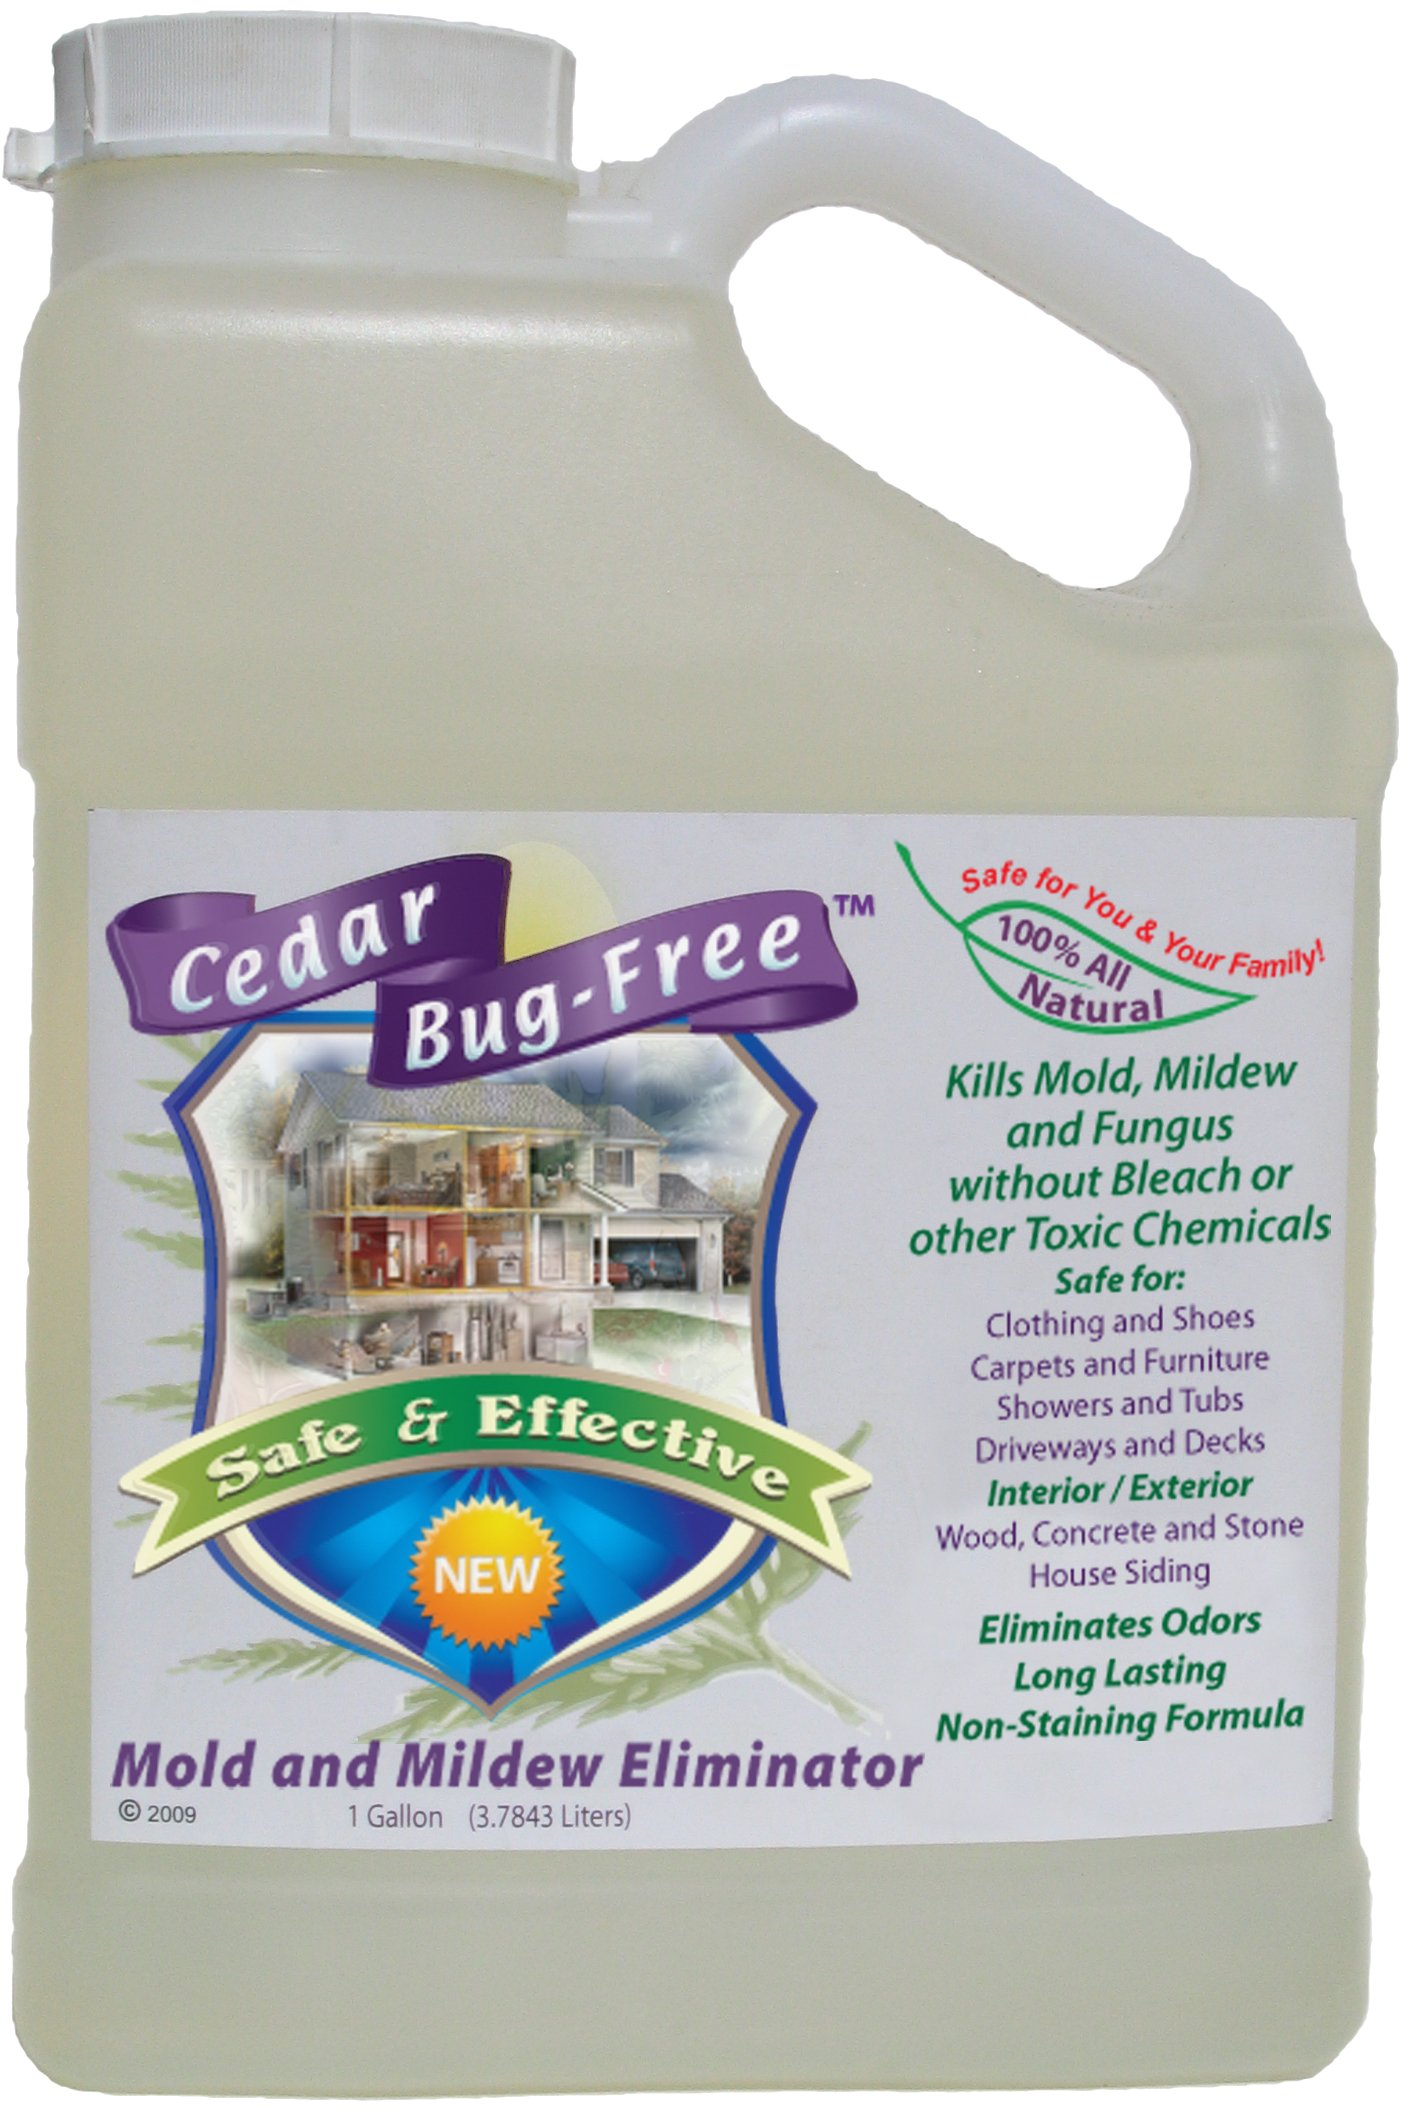 Mold and Mildew Remover - Cedar Bug-Free Mold and Mildew Eliminator. Natural Mold Killer - 1 gallon by Cedar Bug-Free